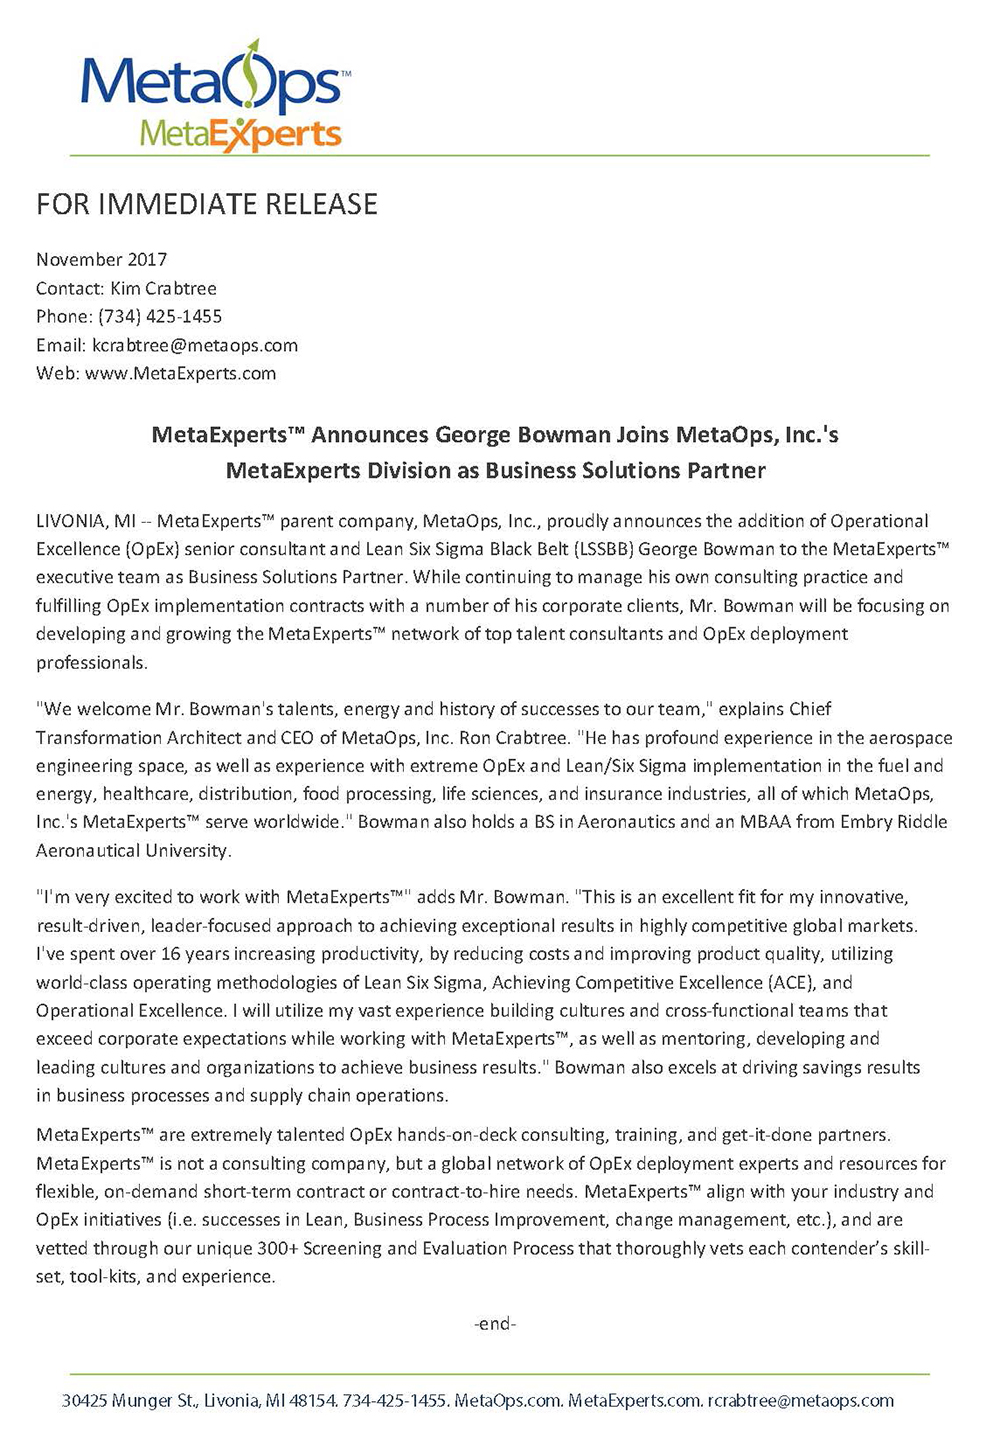 George Bowman Press Release